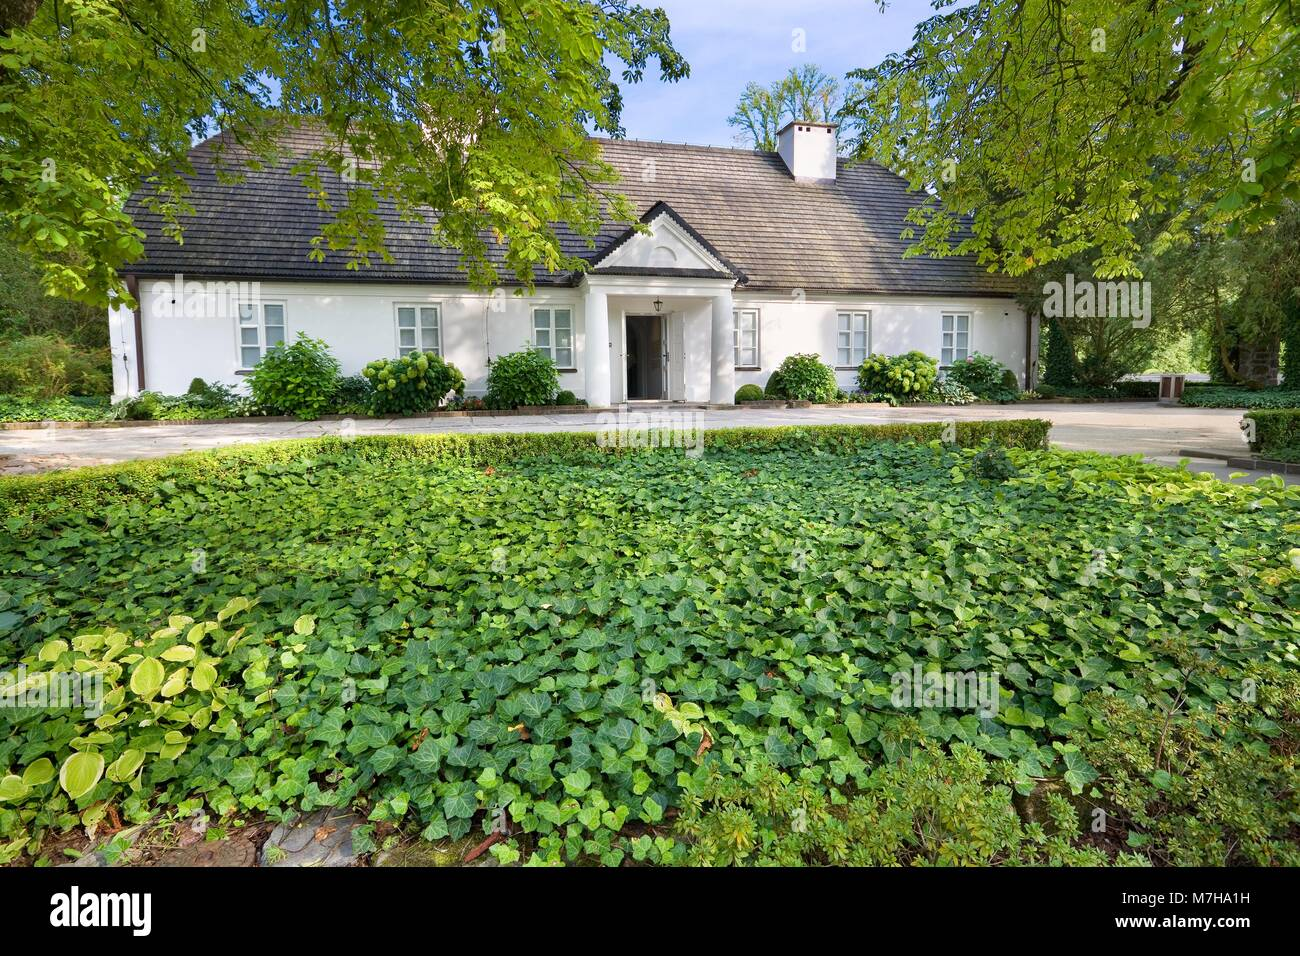 Little manor-house - birthplace of famous Polish composer - Frederick Chopin in Zelazowa Wola, Poland - Stock Image